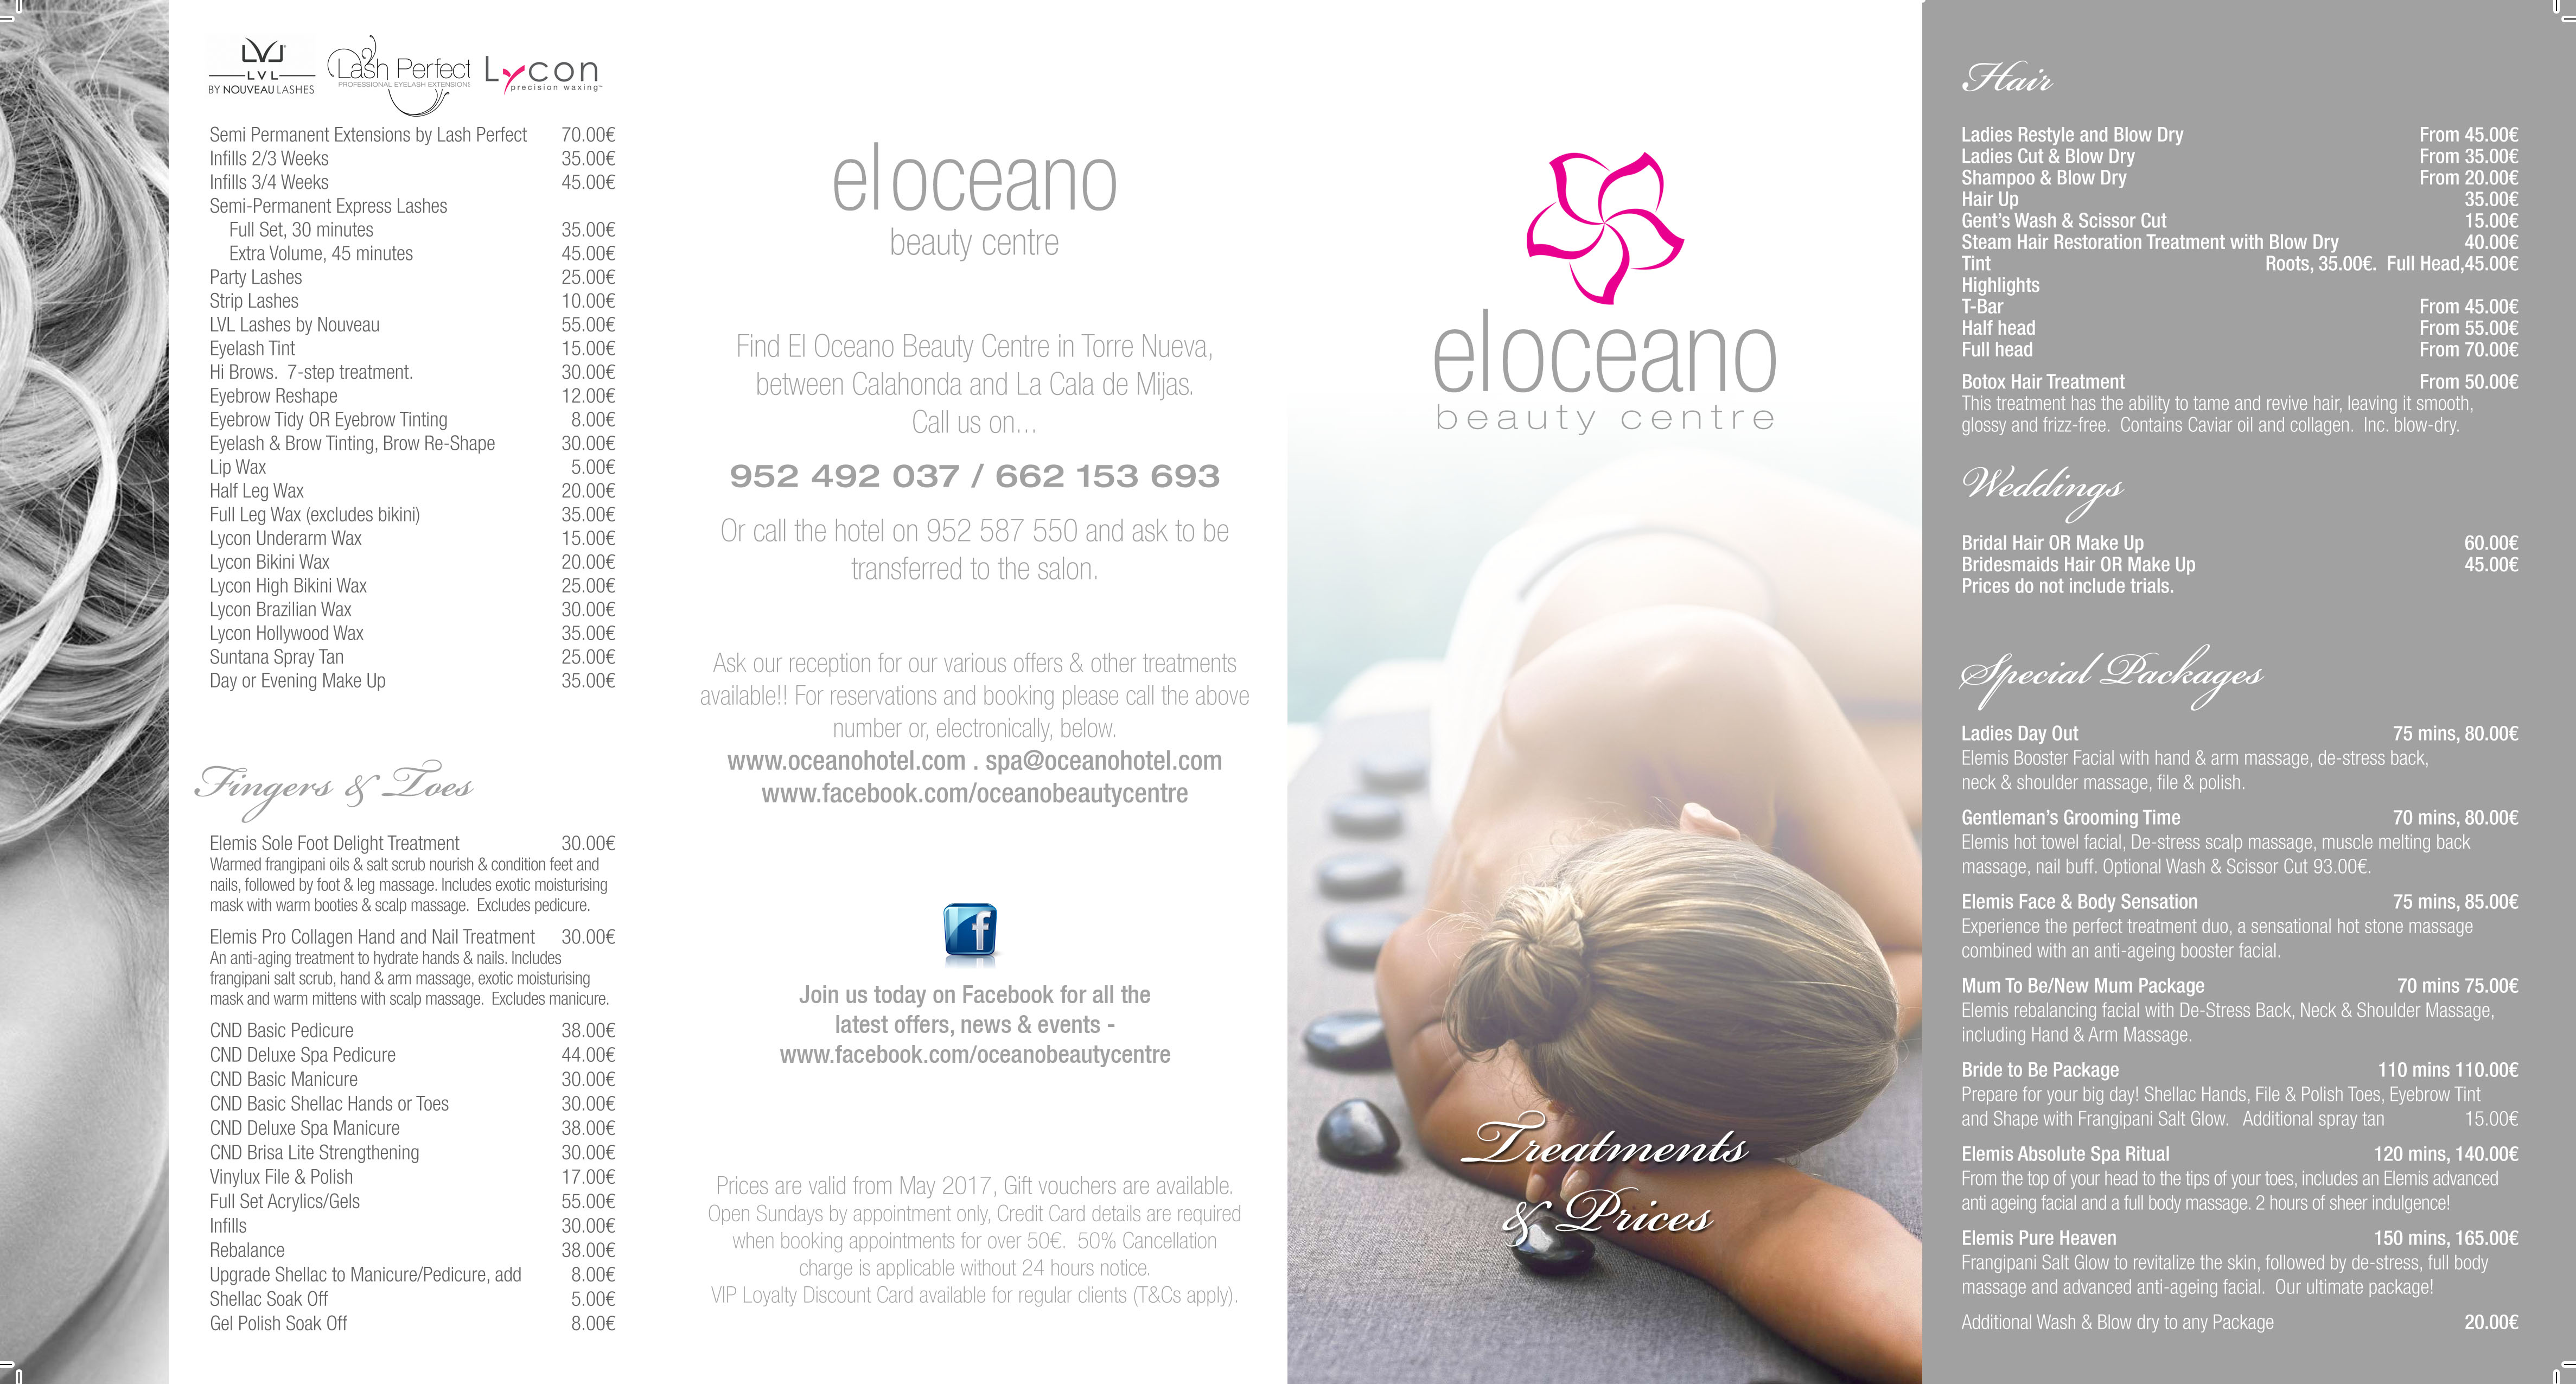 Treatments and prices el oceano beauty salon for A trial beauty treatment salon